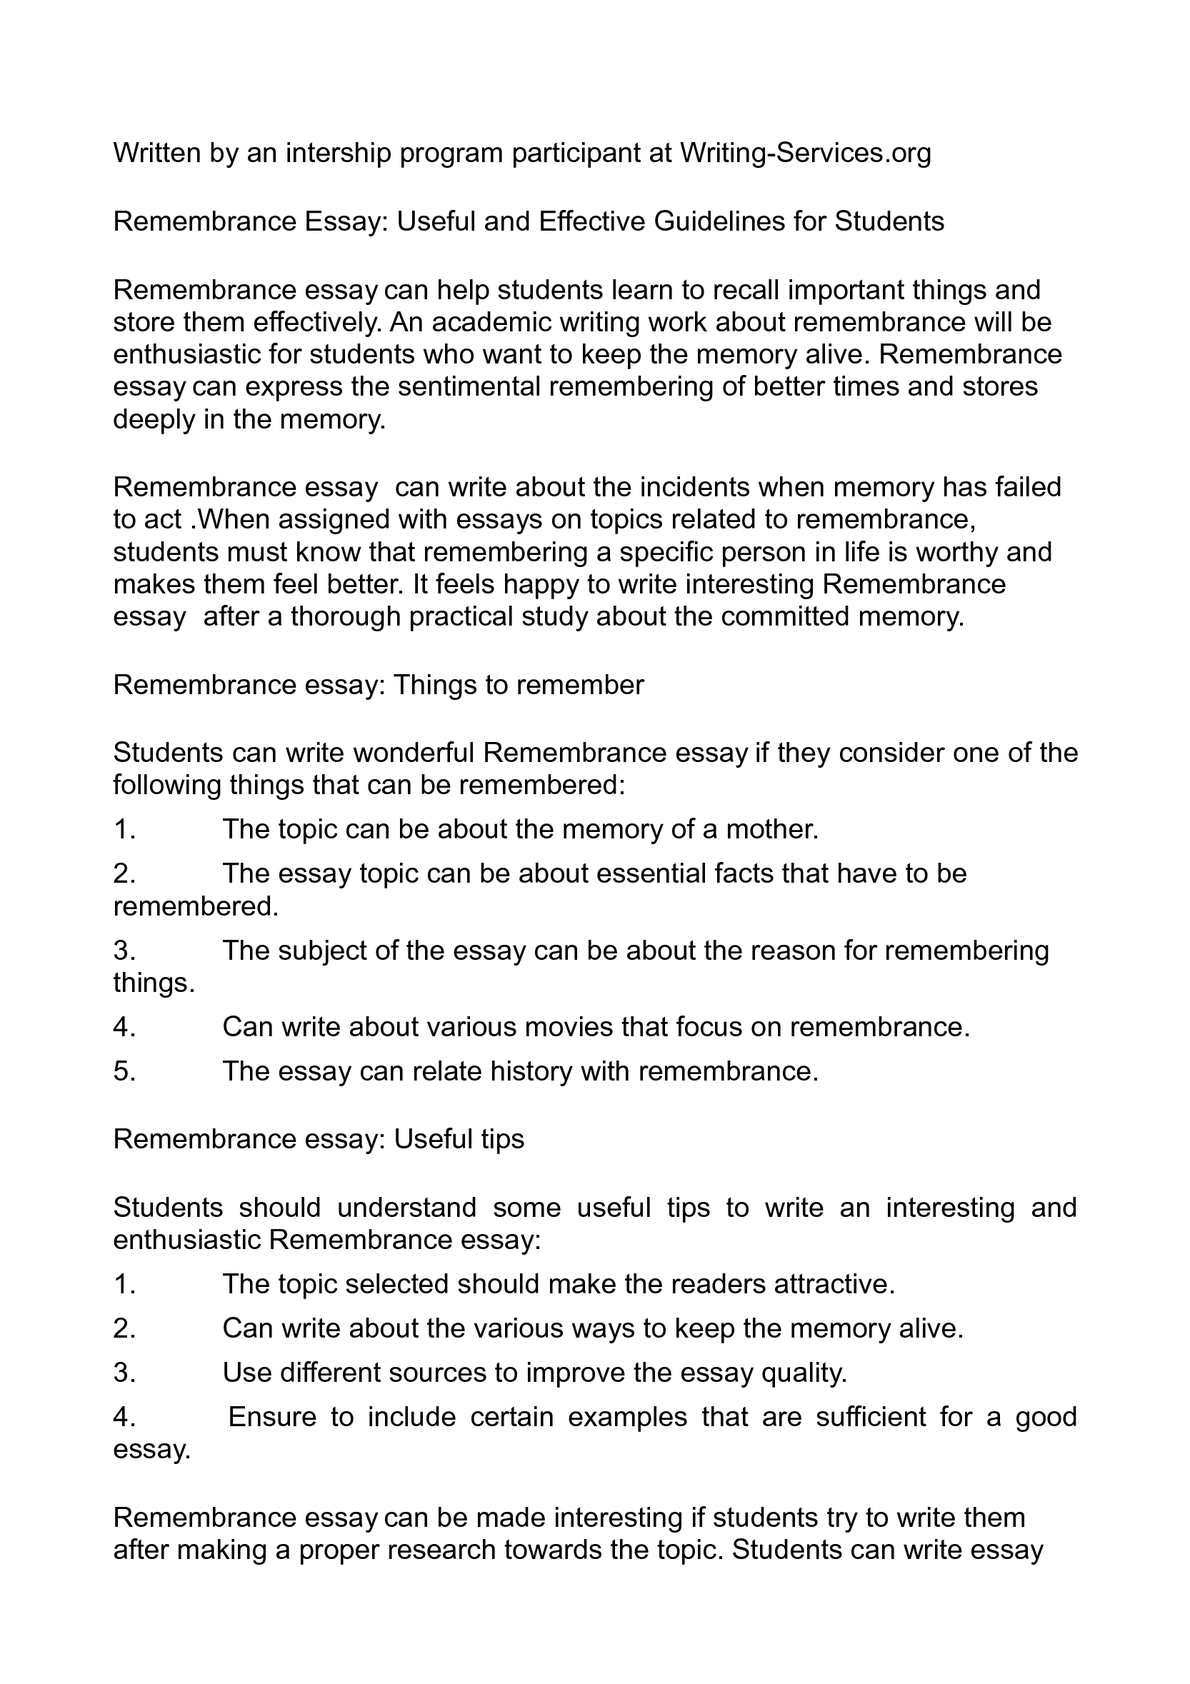 Calaméo - Remembrance Essay: Useful and Effective Guidelines for